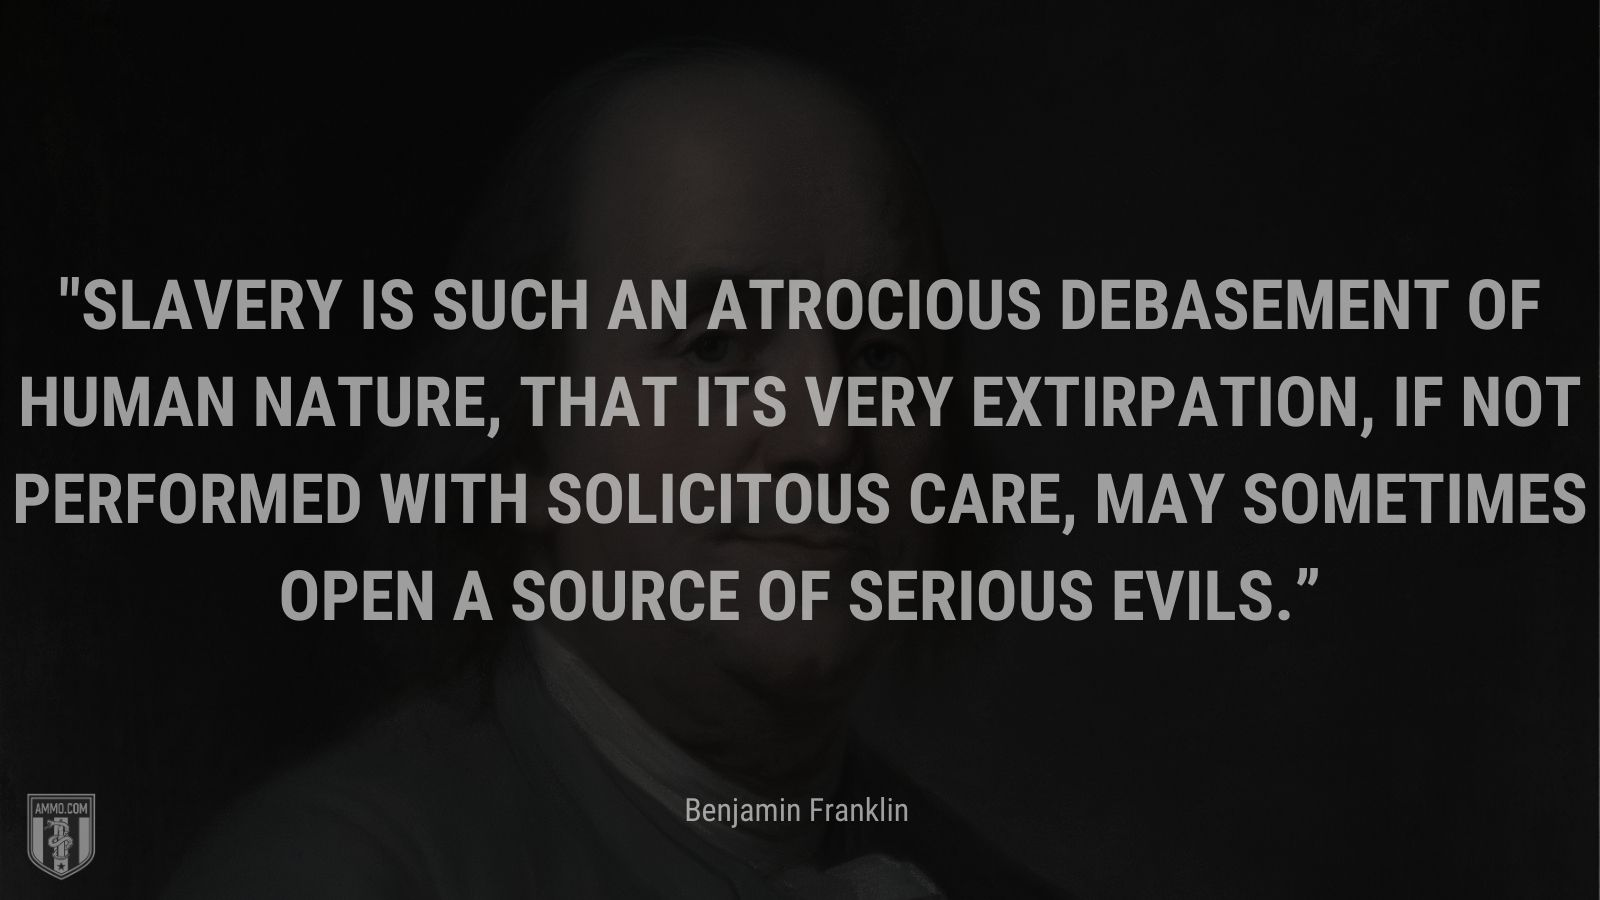 """""""Slavery is such an atrocious debasement of human nature, that its very extirpation, if not performed with solicitous care, may sometimes open a source of serious evils."""" - Benjamin Franklin"""